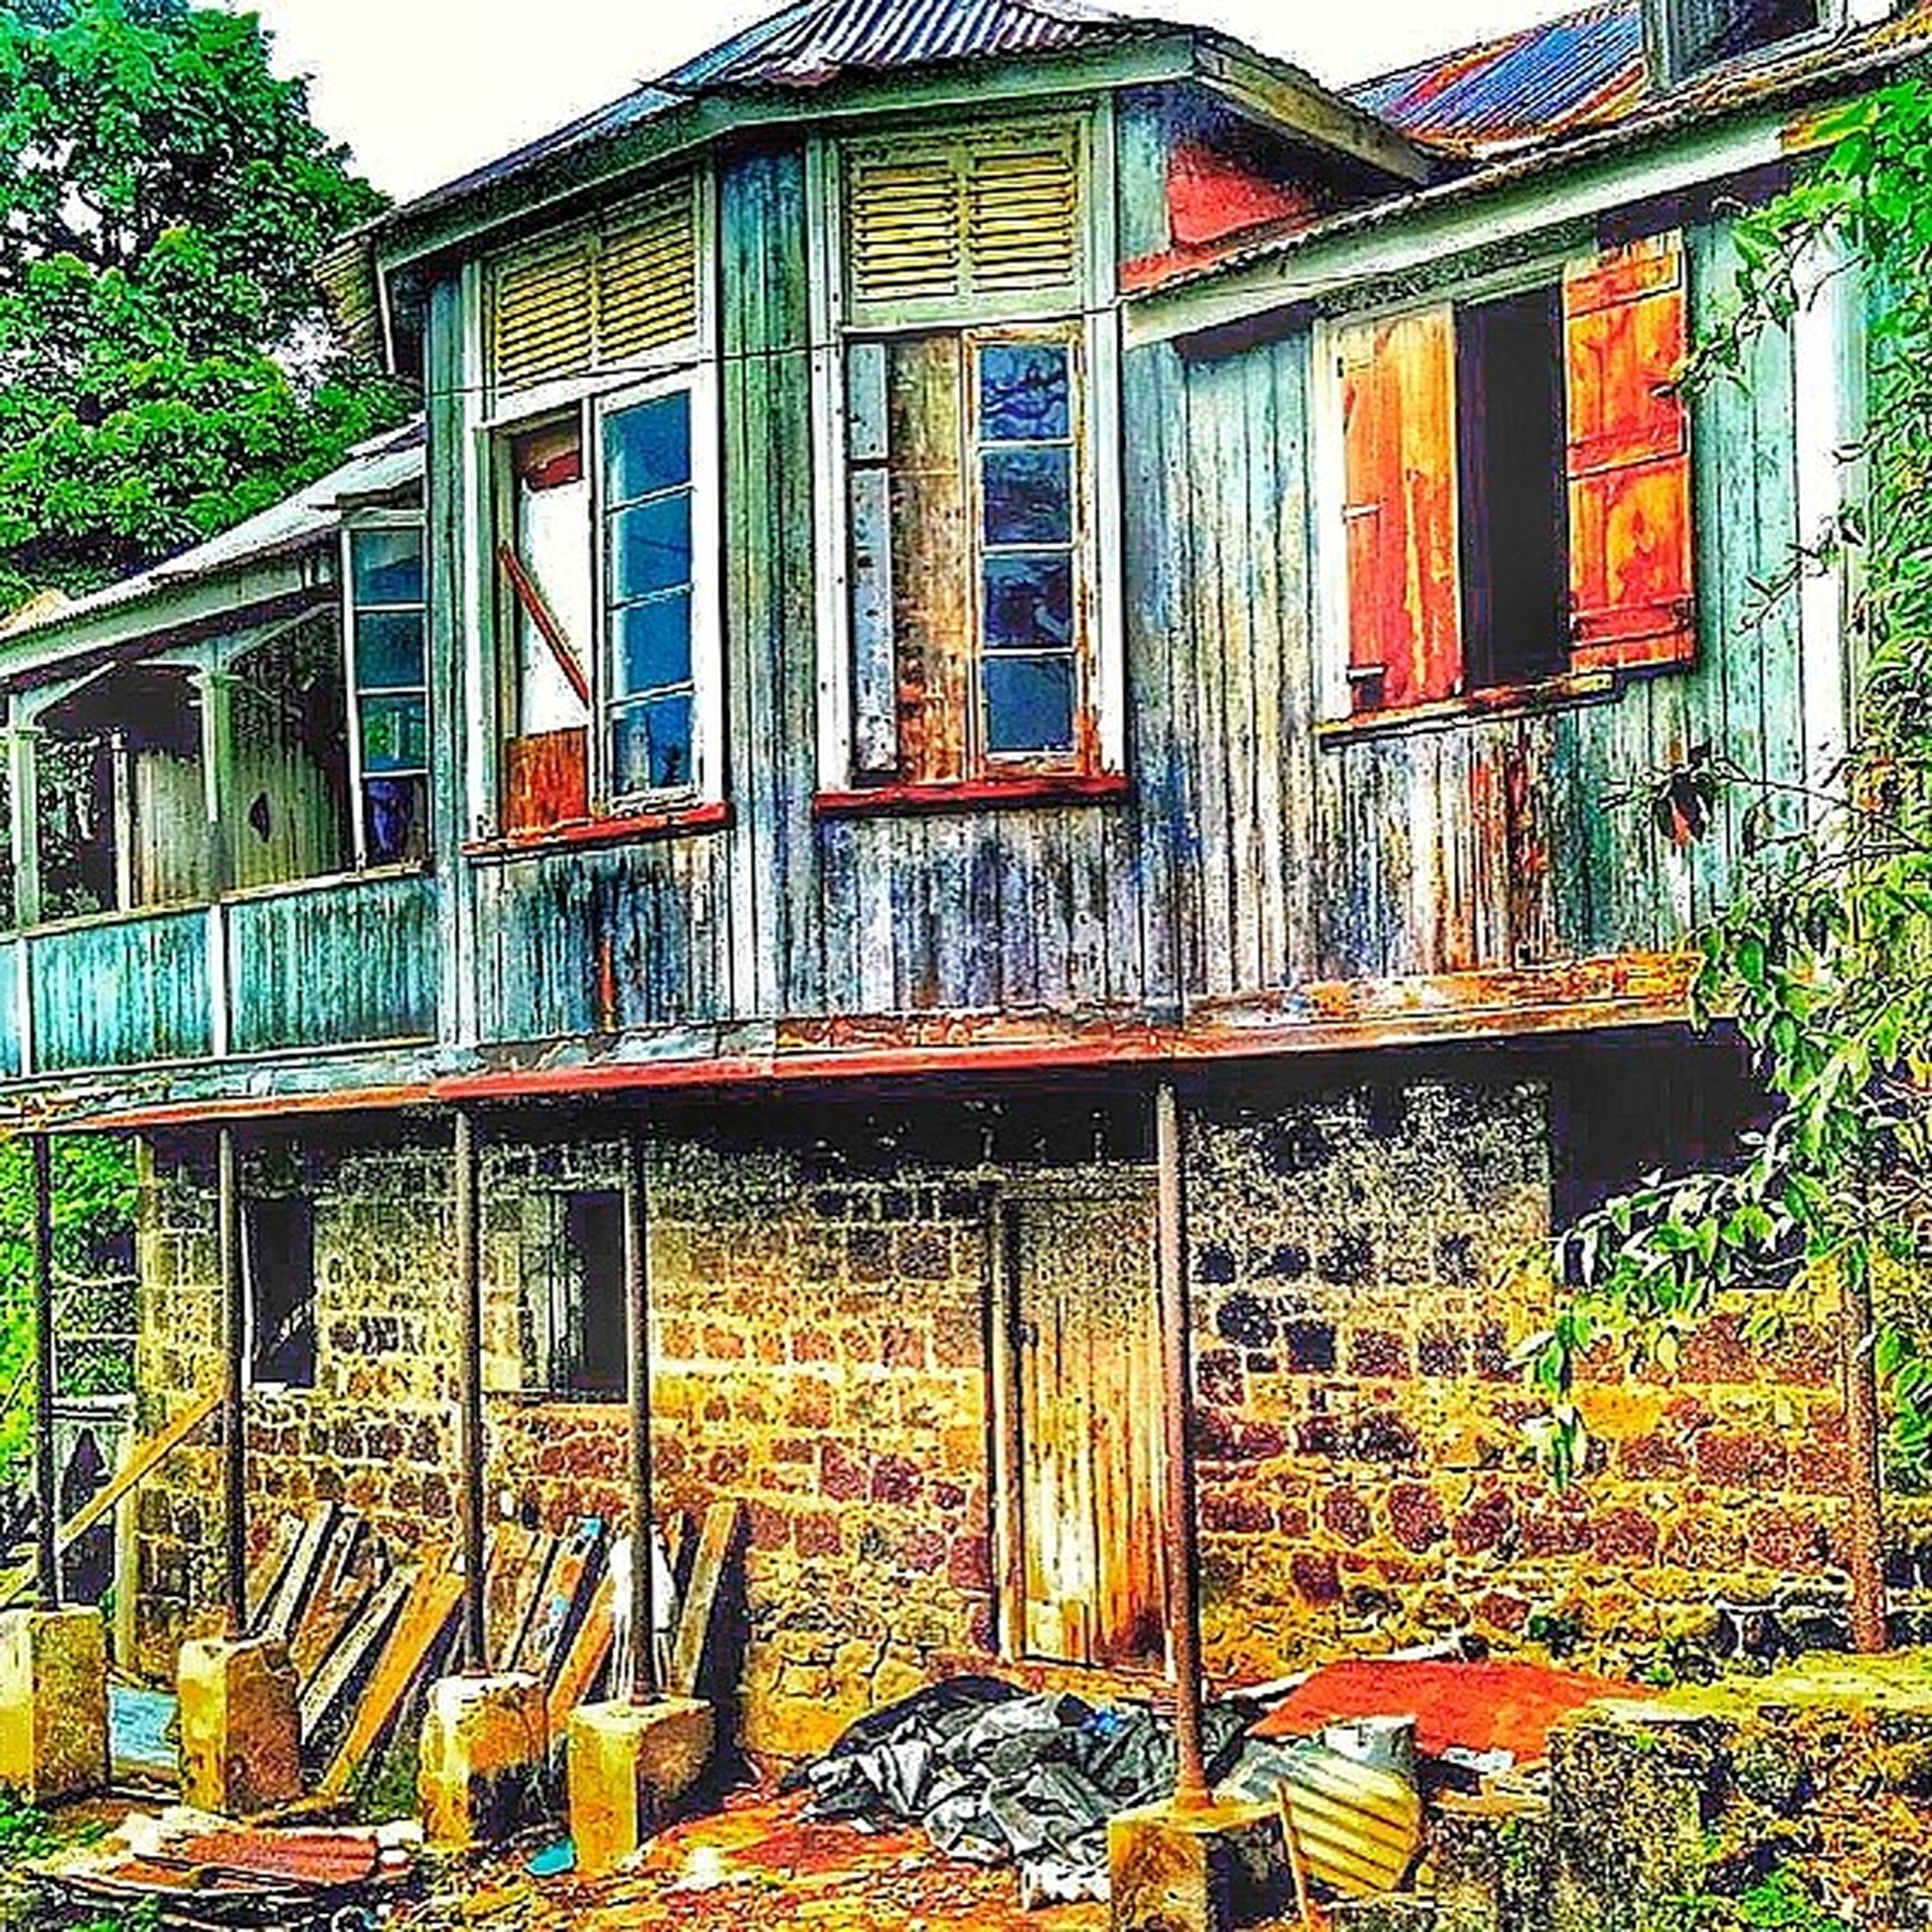 building exterior, architecture, built structure, house, window, residential structure, residential building, door, day, tree, closed, outdoors, no people, wood - material, building, multi colored, old, facade, entrance, blue